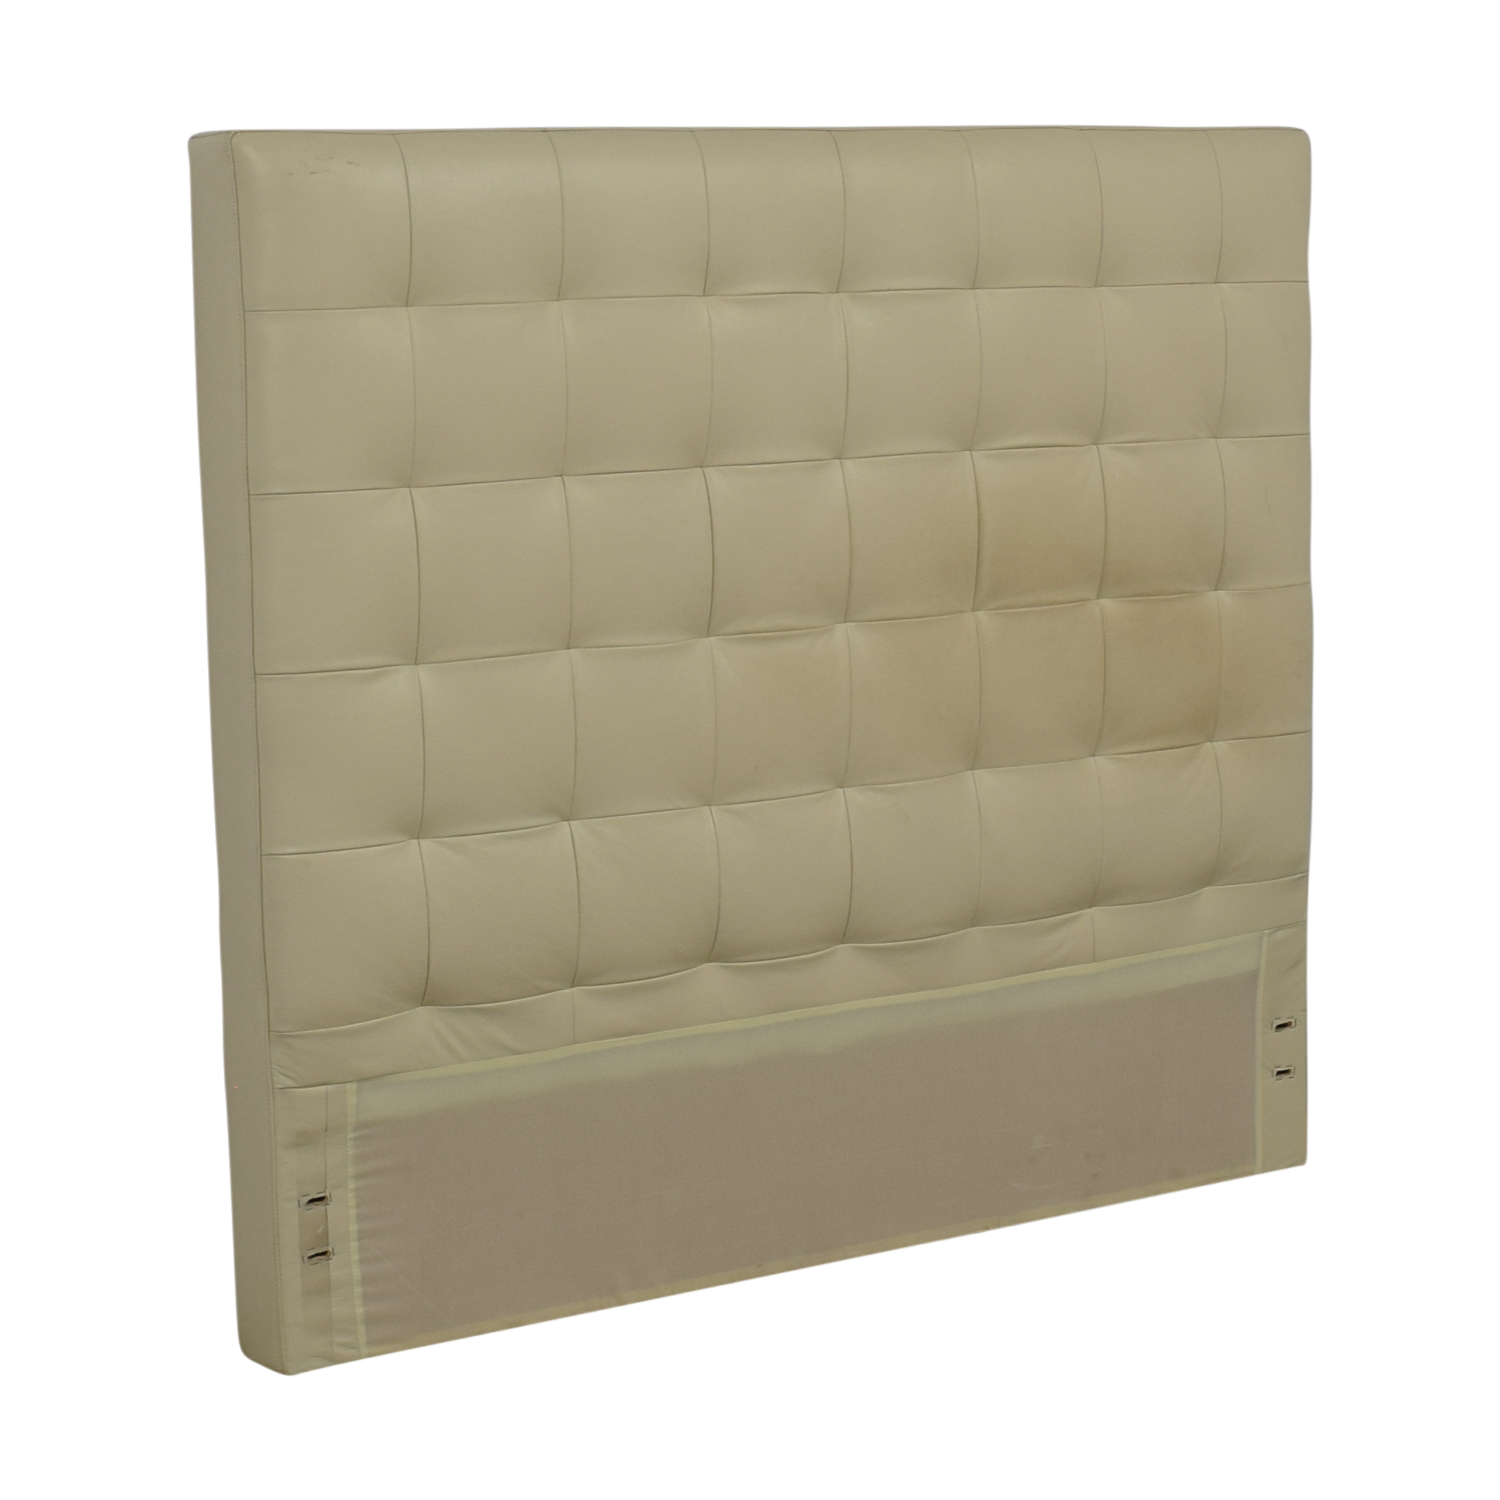 West Elm West Elm White Leather Tufted Queen Headboard Beds